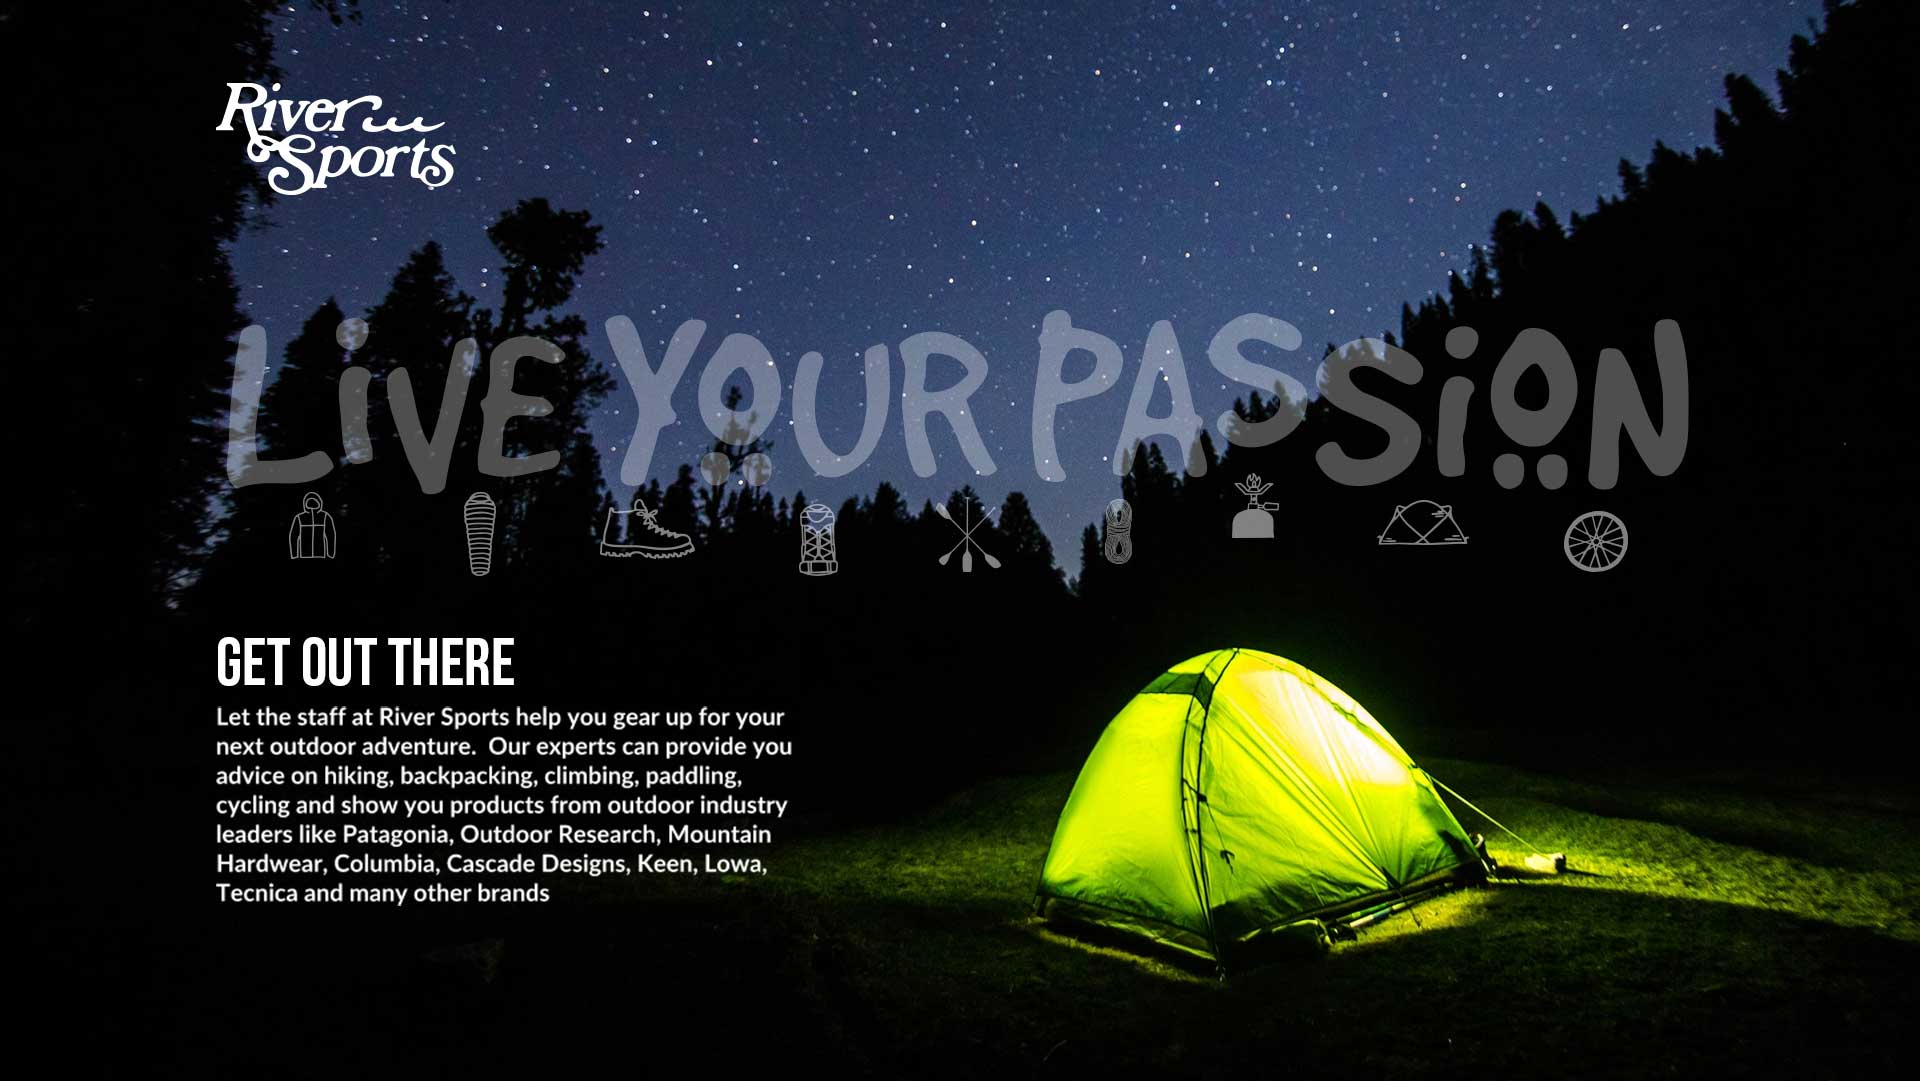 Live Your Passion - River Sports Outfitters